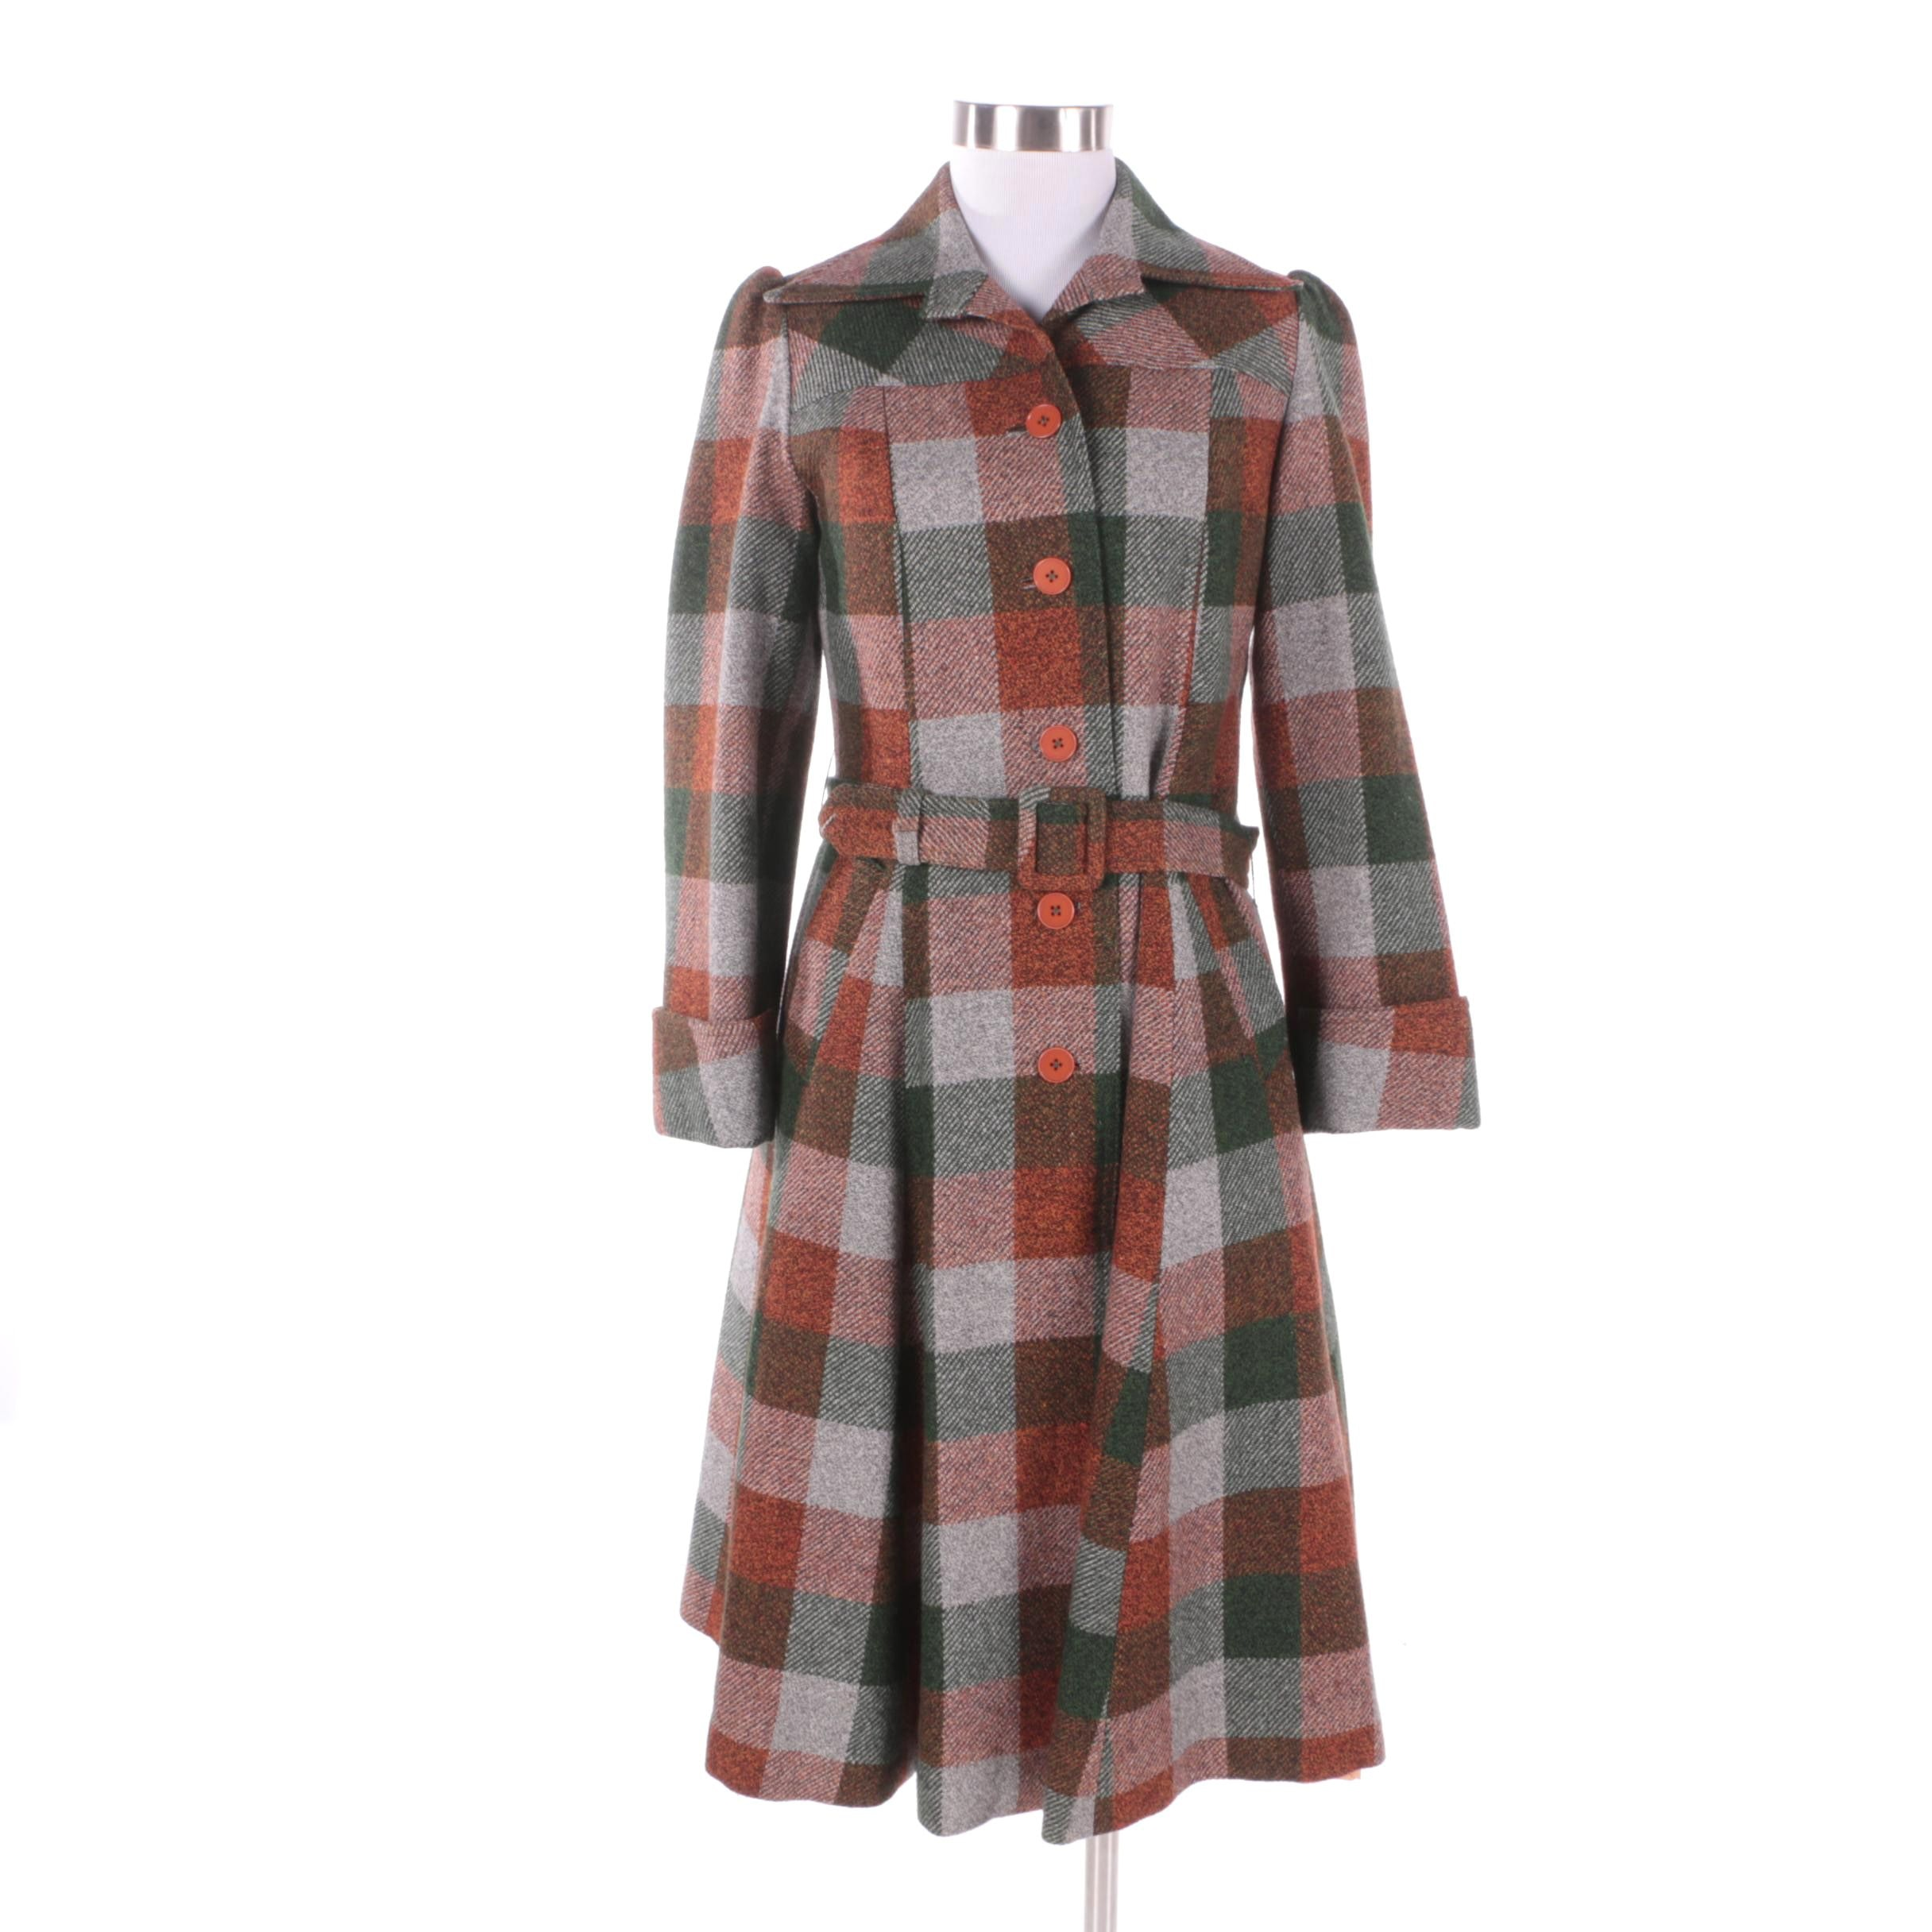 Women's 1950s Vintage Orange and Green Plaid Wool Princess Coat